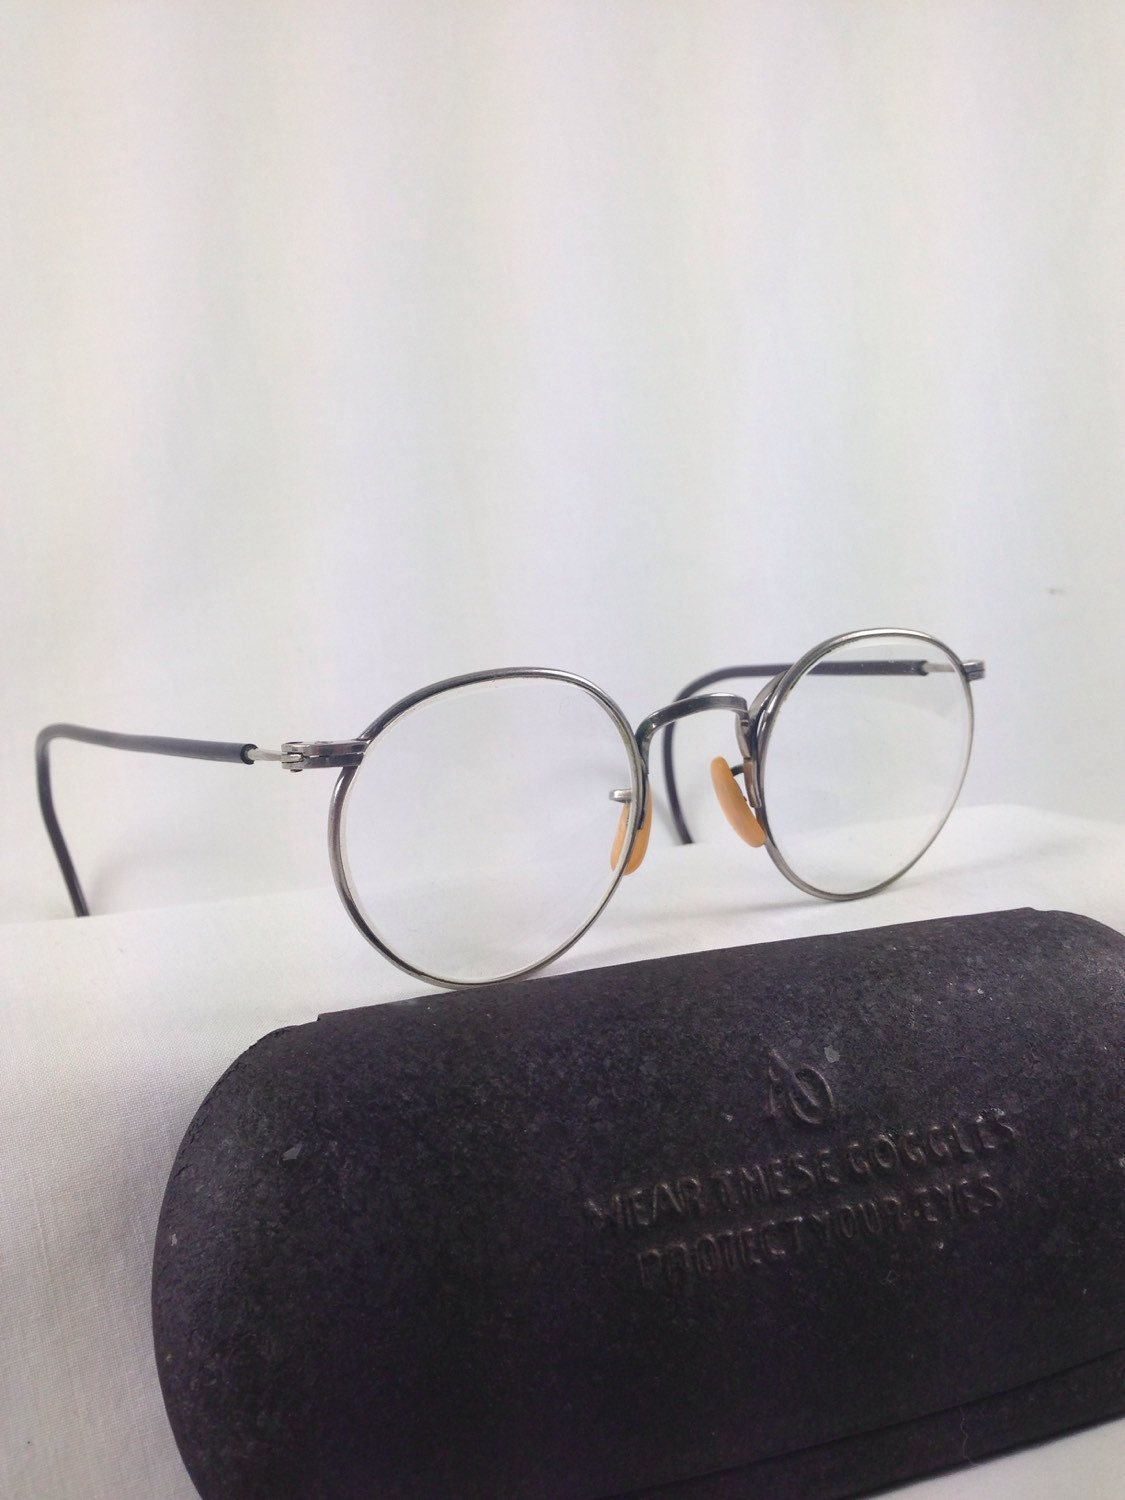 Vintage Bausch & Lomb Ful Vue Safety Glasses 23 Clear